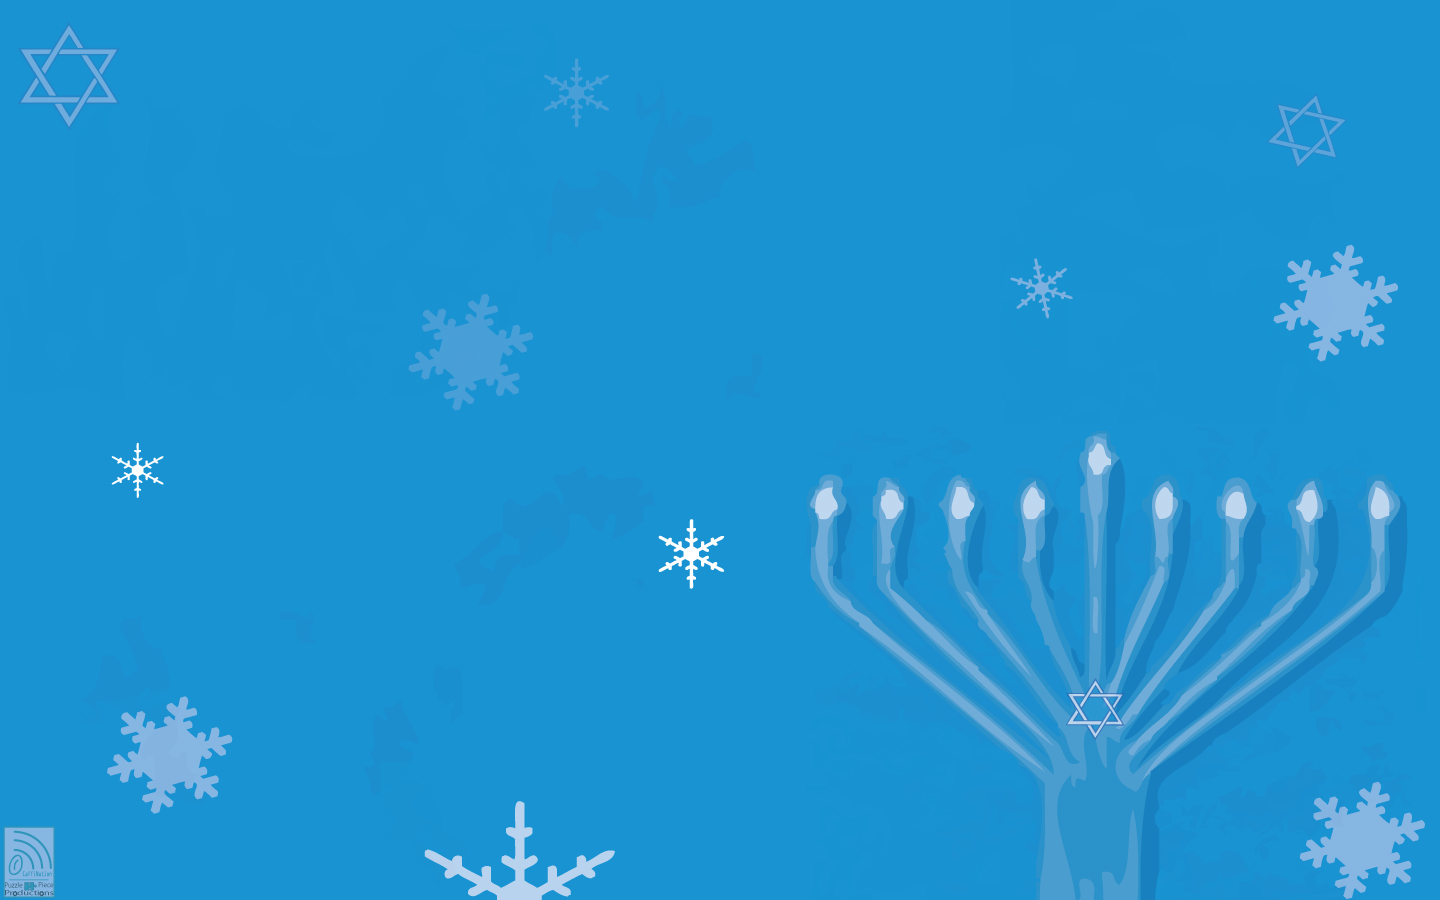 Hanukkah Wallpaper 1440x900